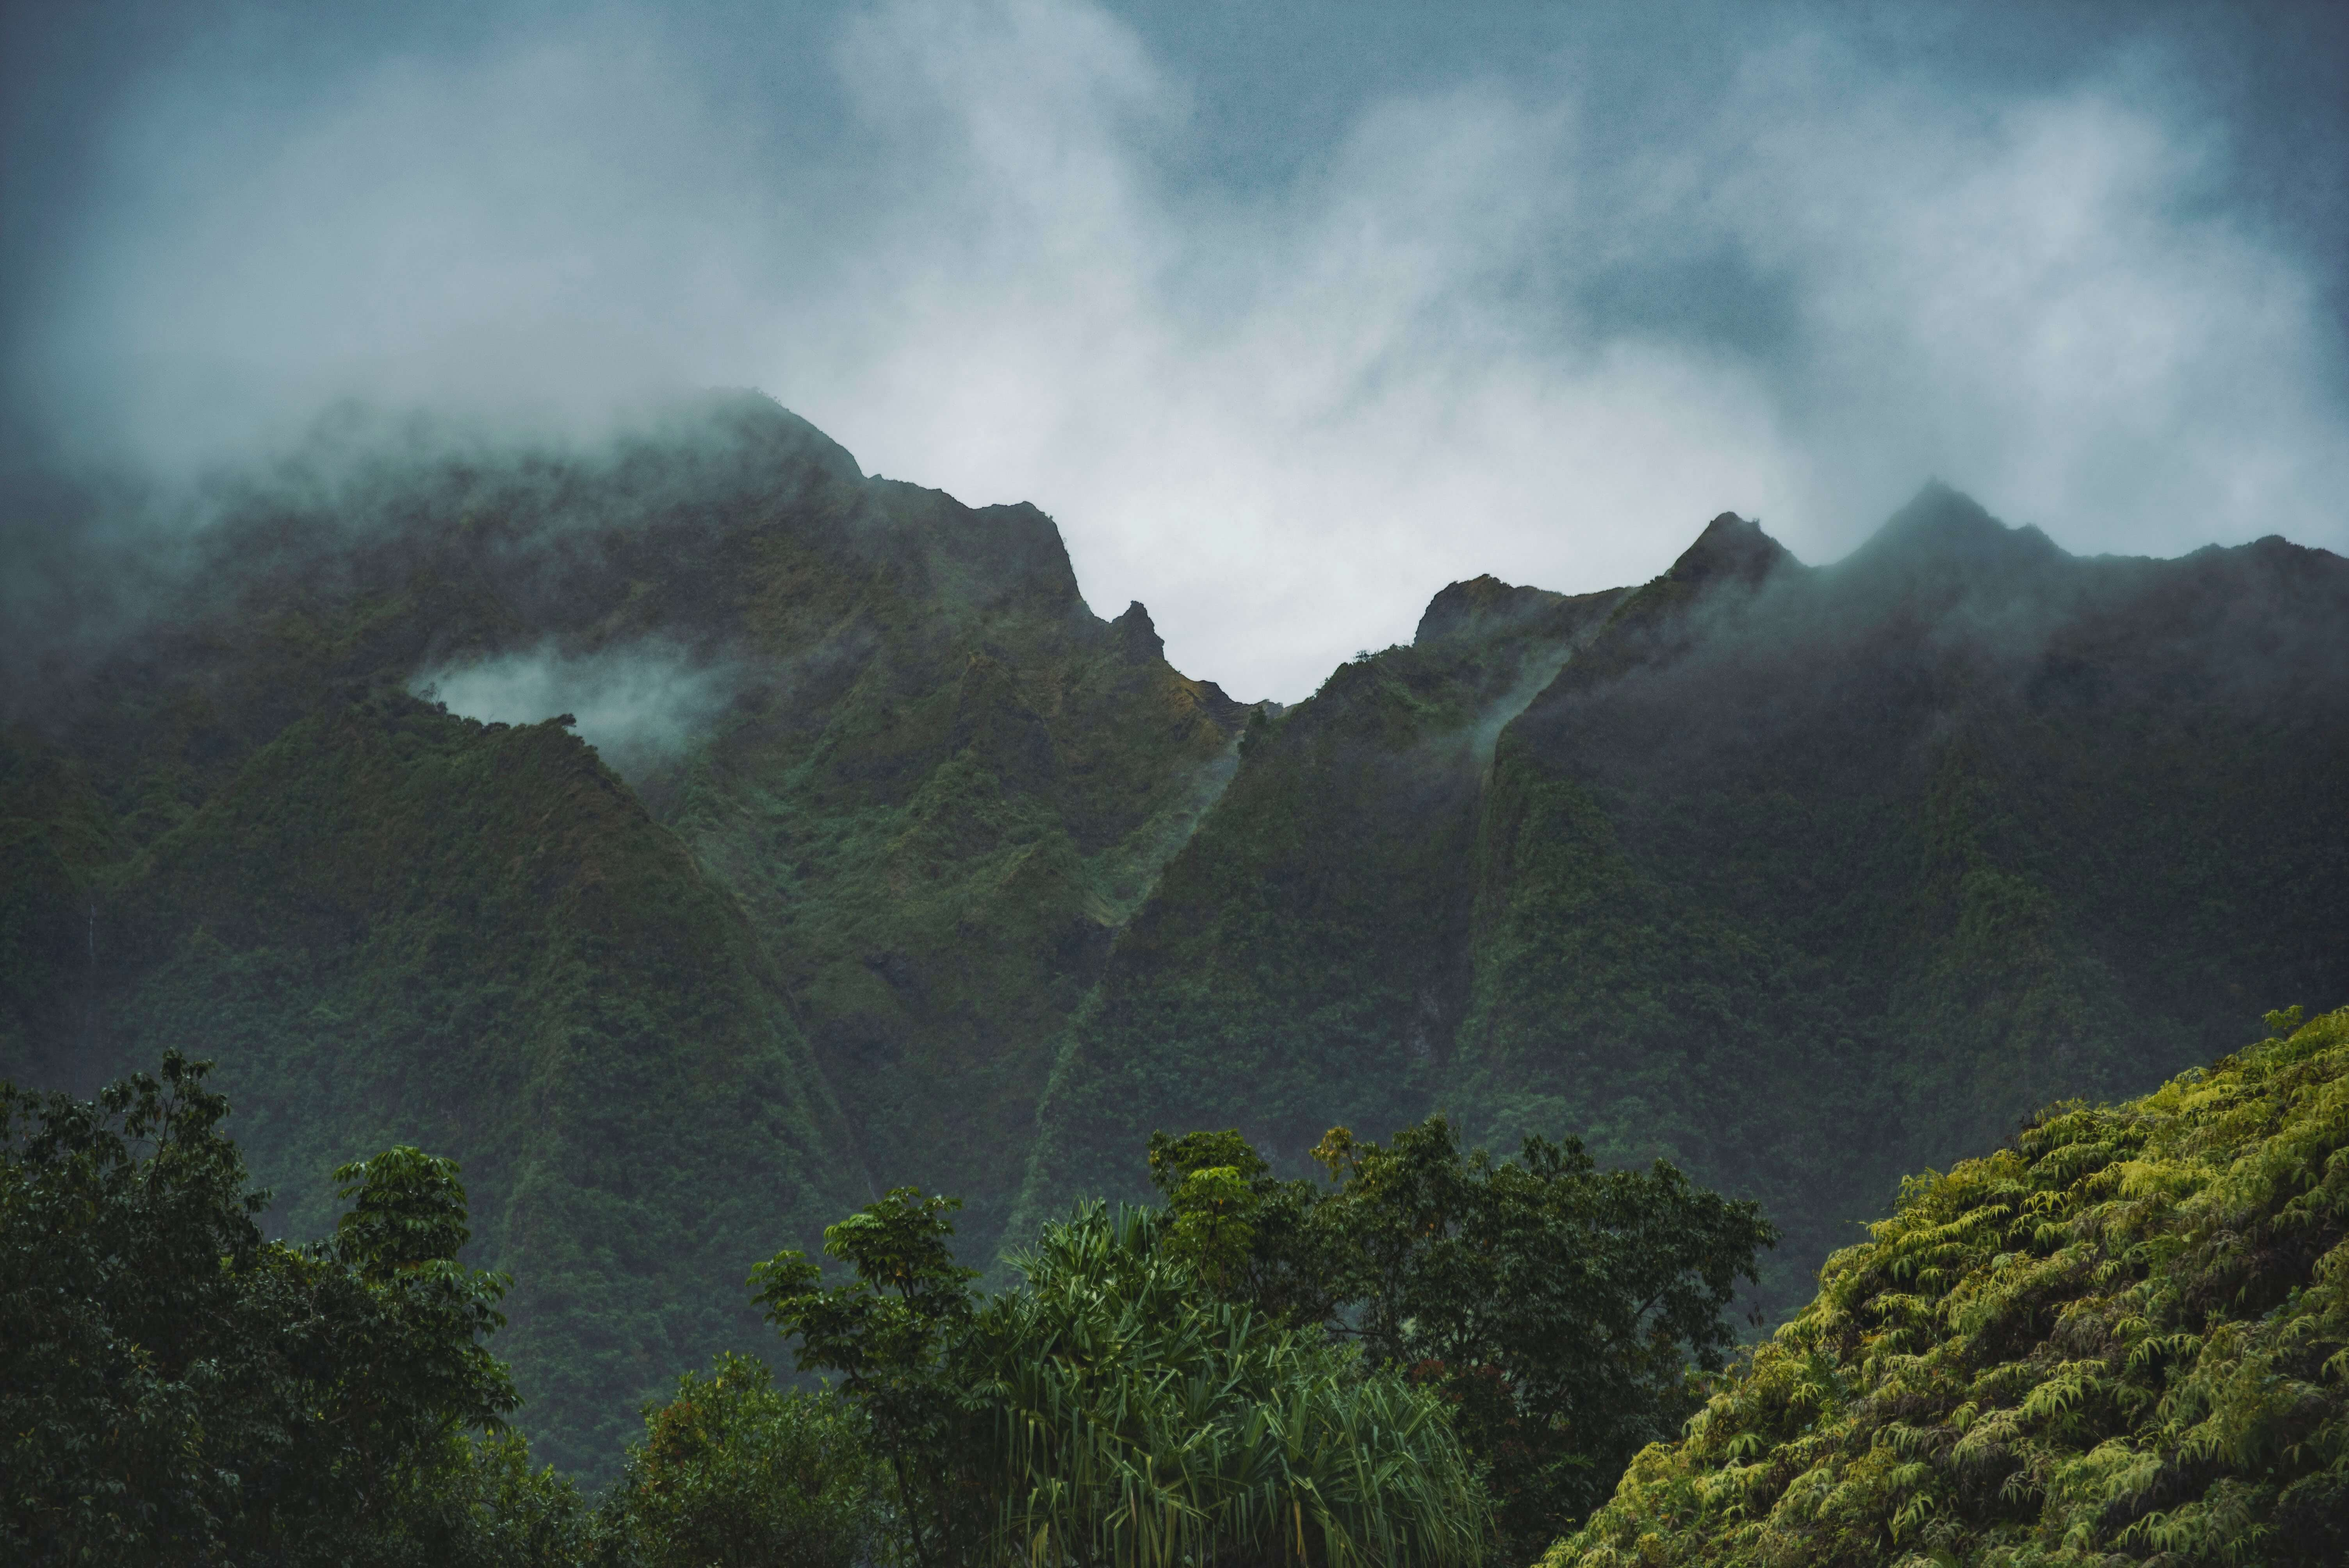 Fog over forested mountains